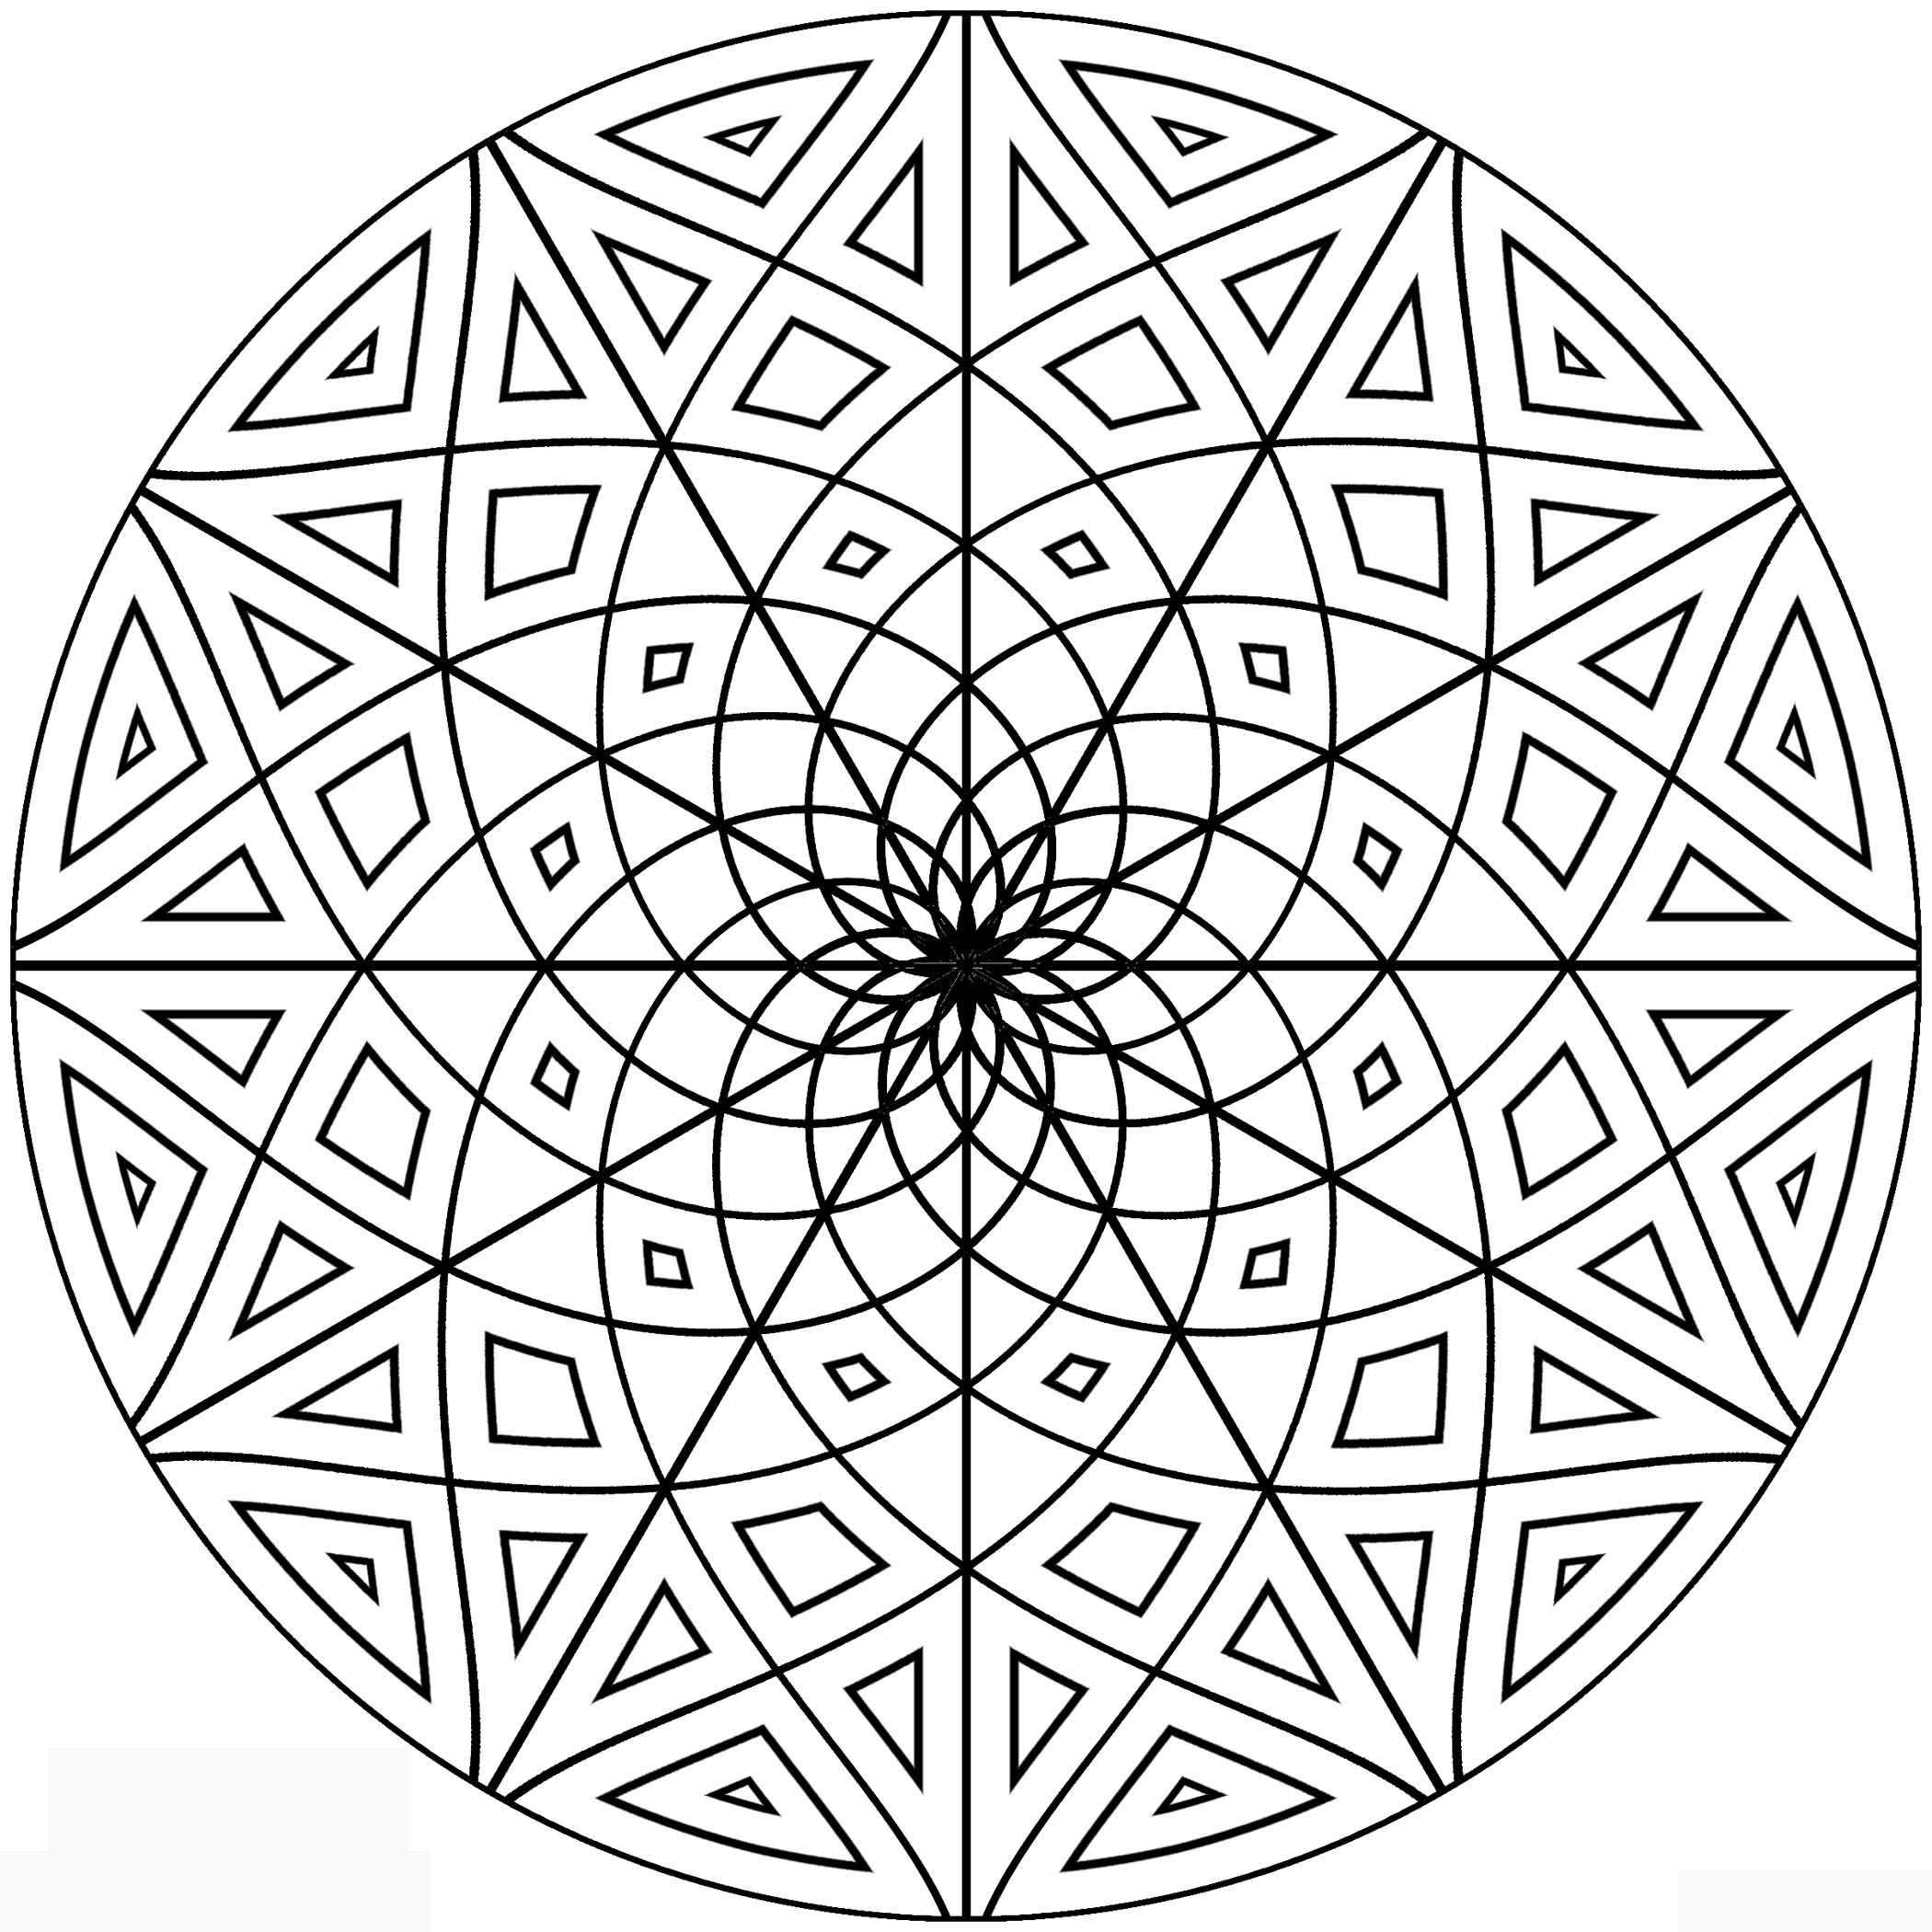 patterns for colouring for adults free printable geometric coloring pages for adults patterns for colouring for adults